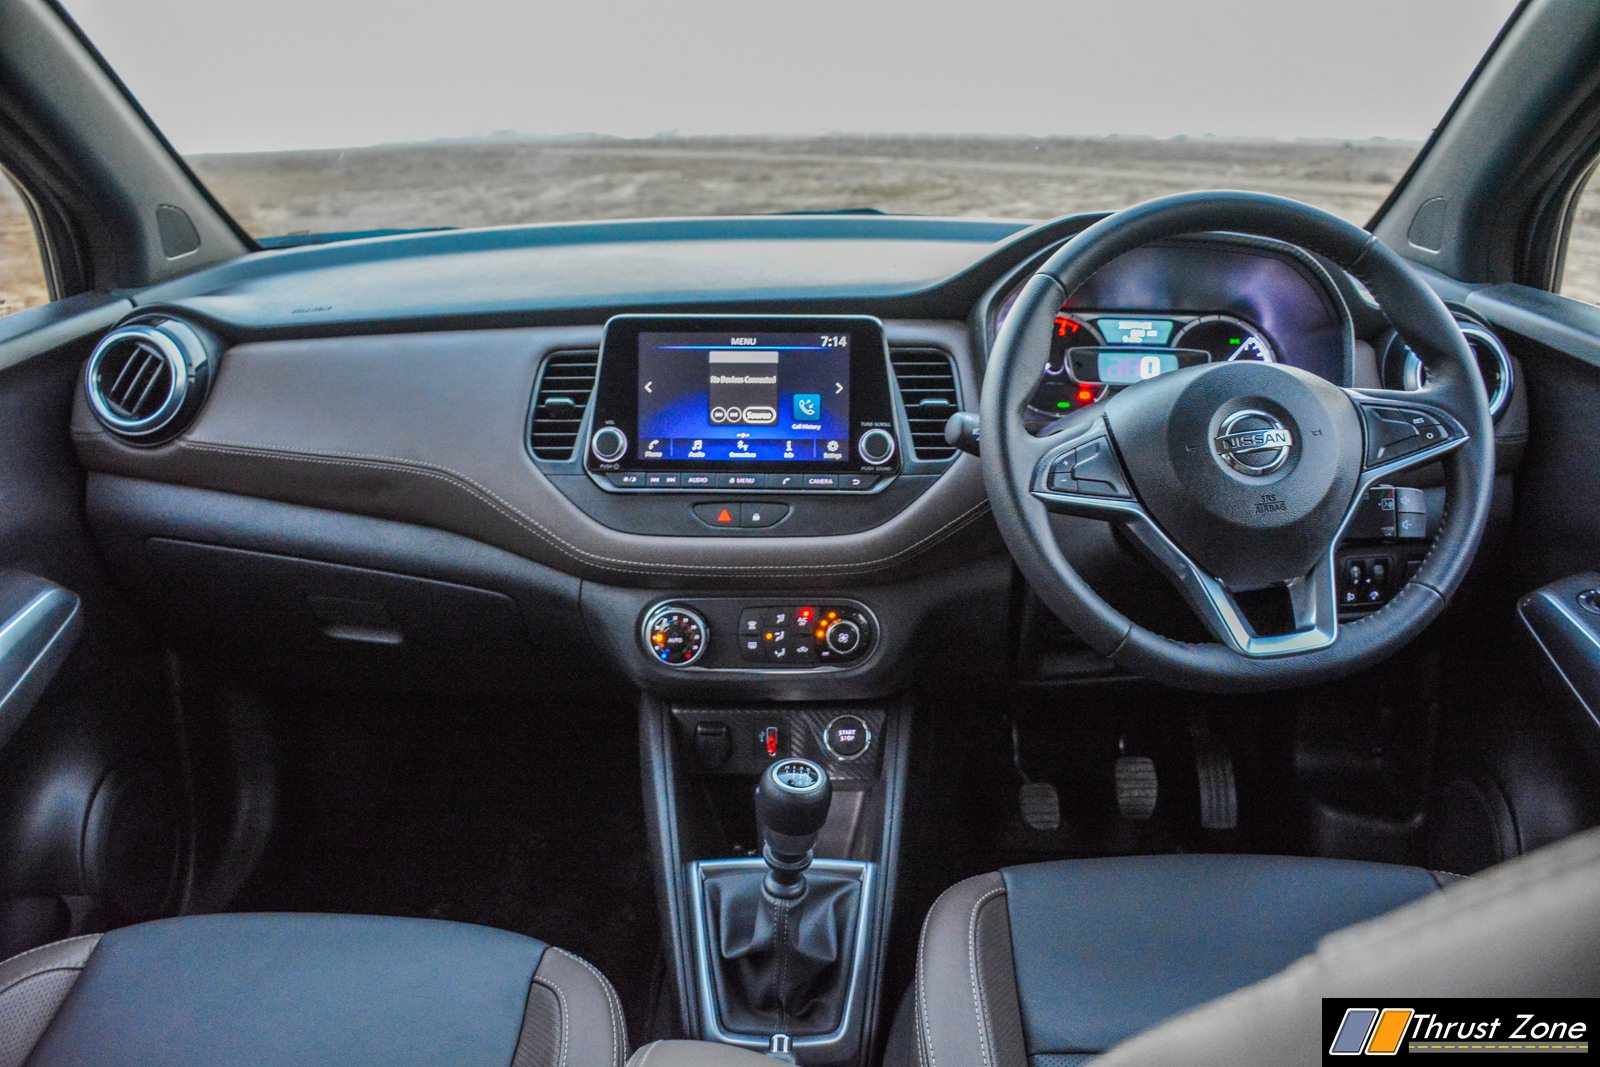 https://www.thrustzone.com/wp-content/uploads/2018/12/Nissan-Kicks-India-Review-Diese-2019l-12.jpg